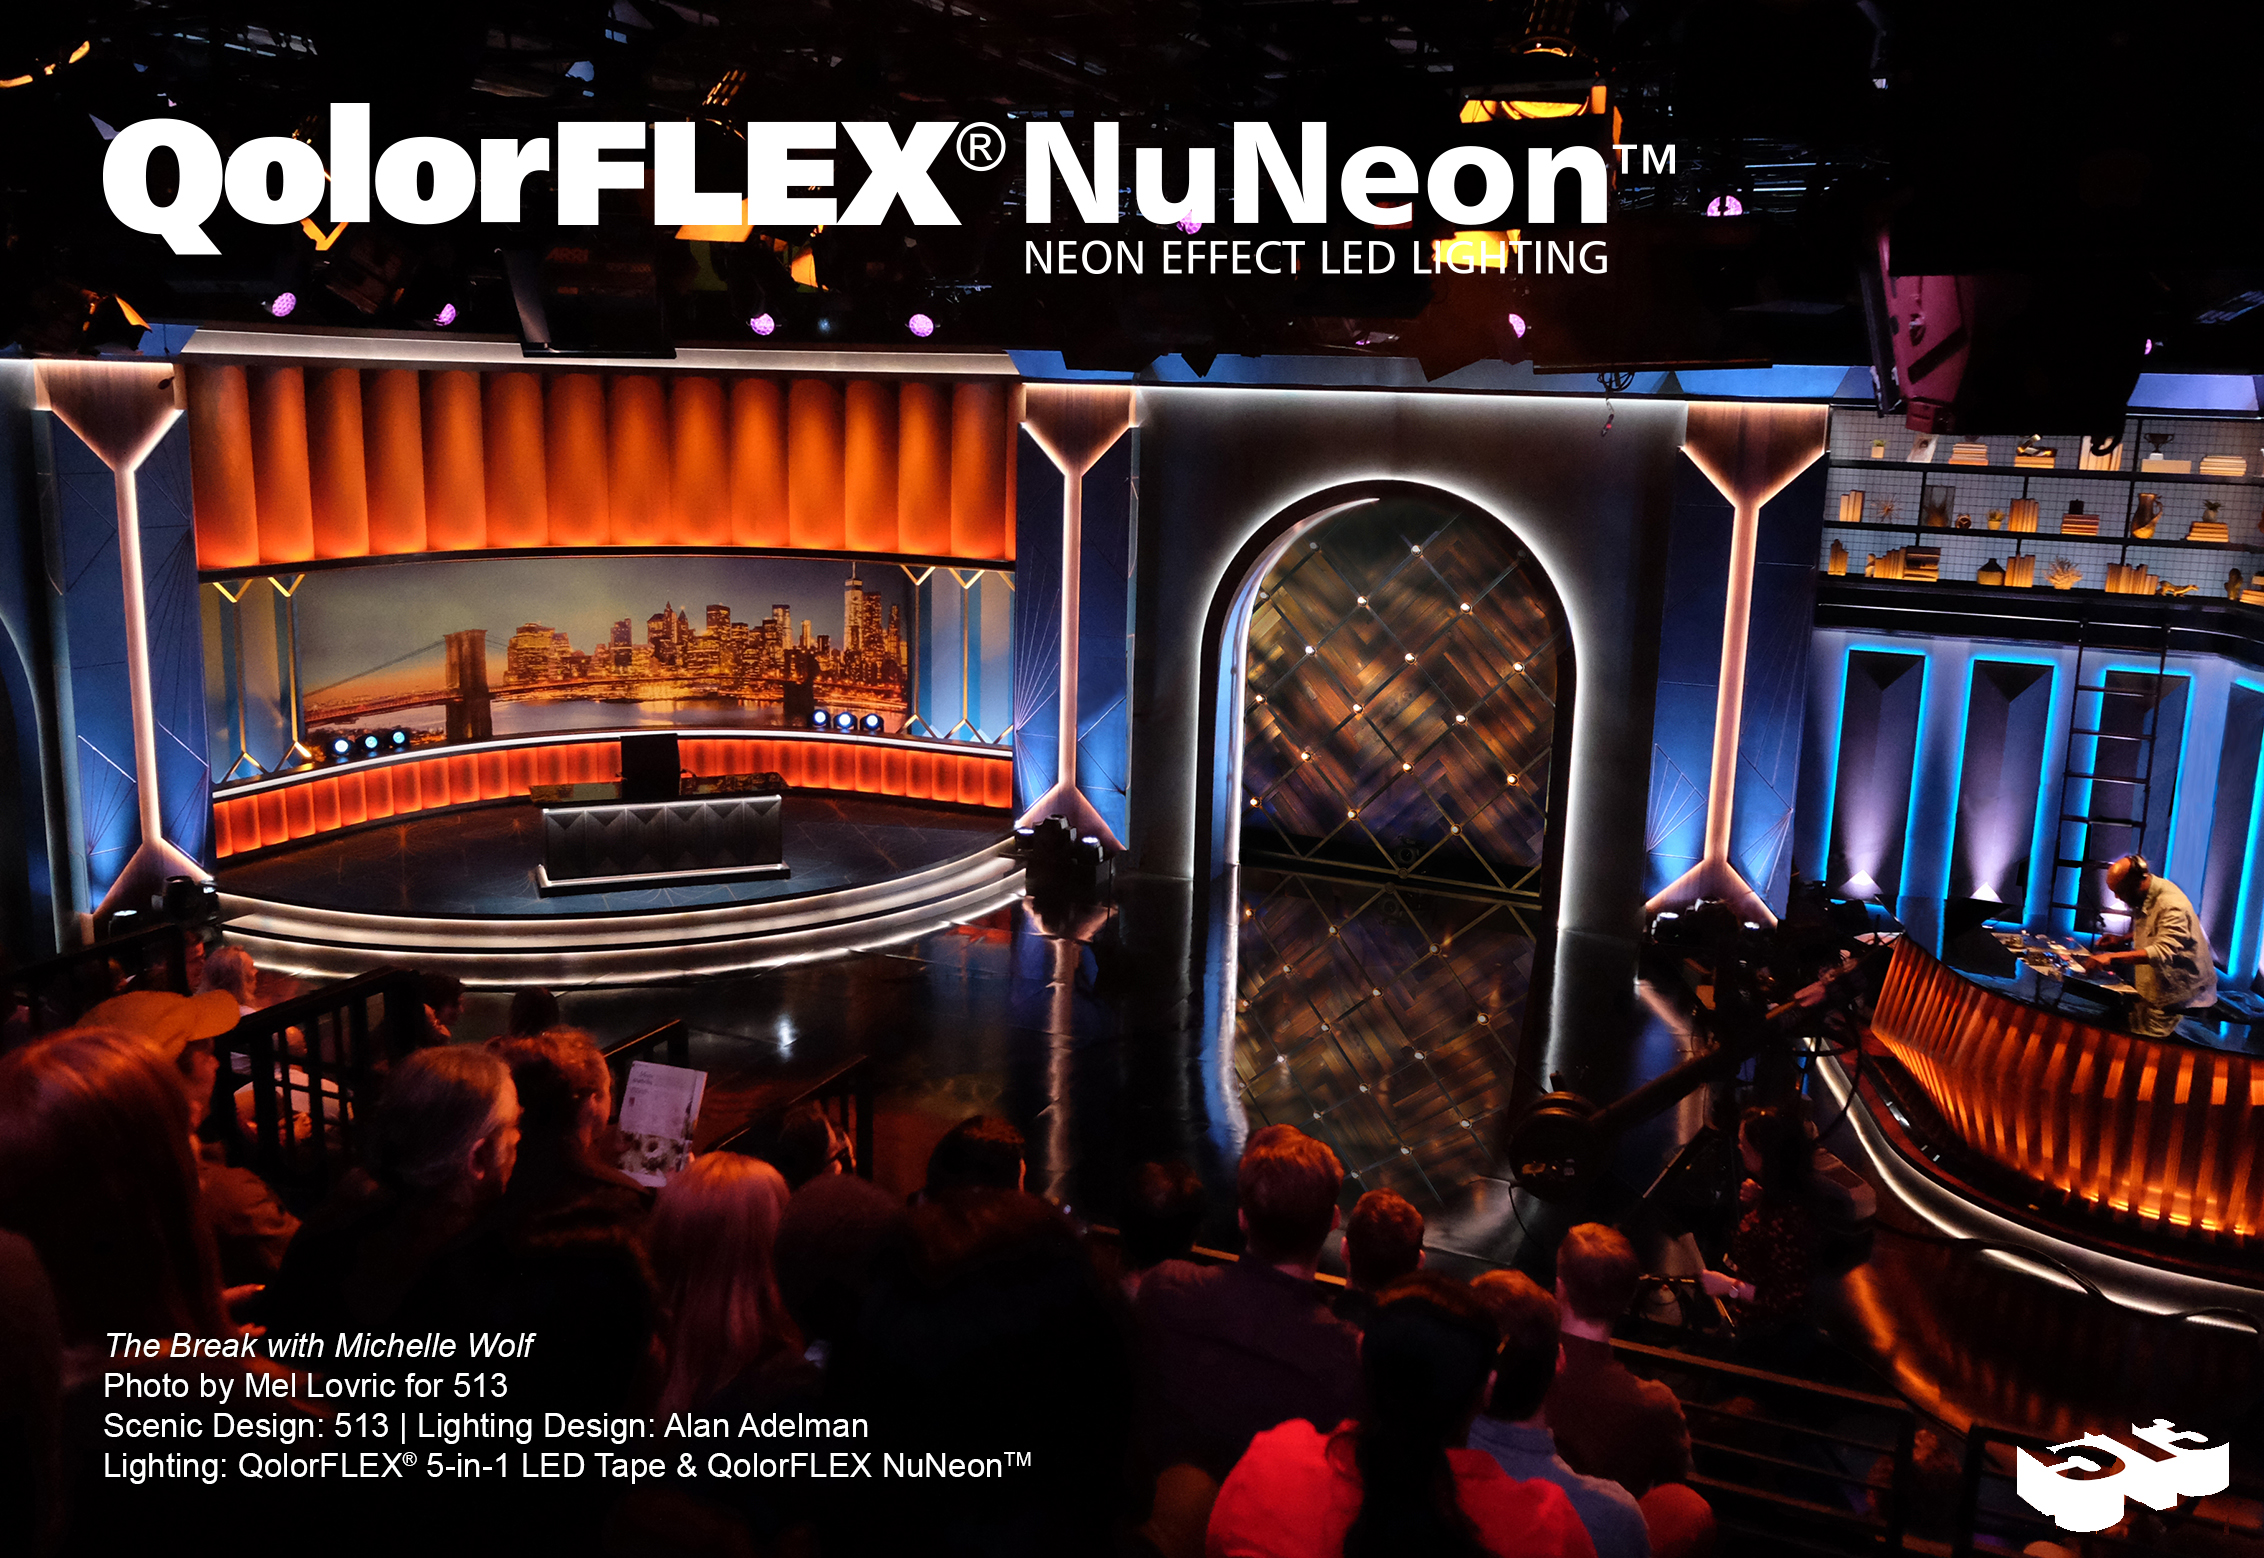 QolorFLEX NuNeon on set at The Break with Michelle Wolf